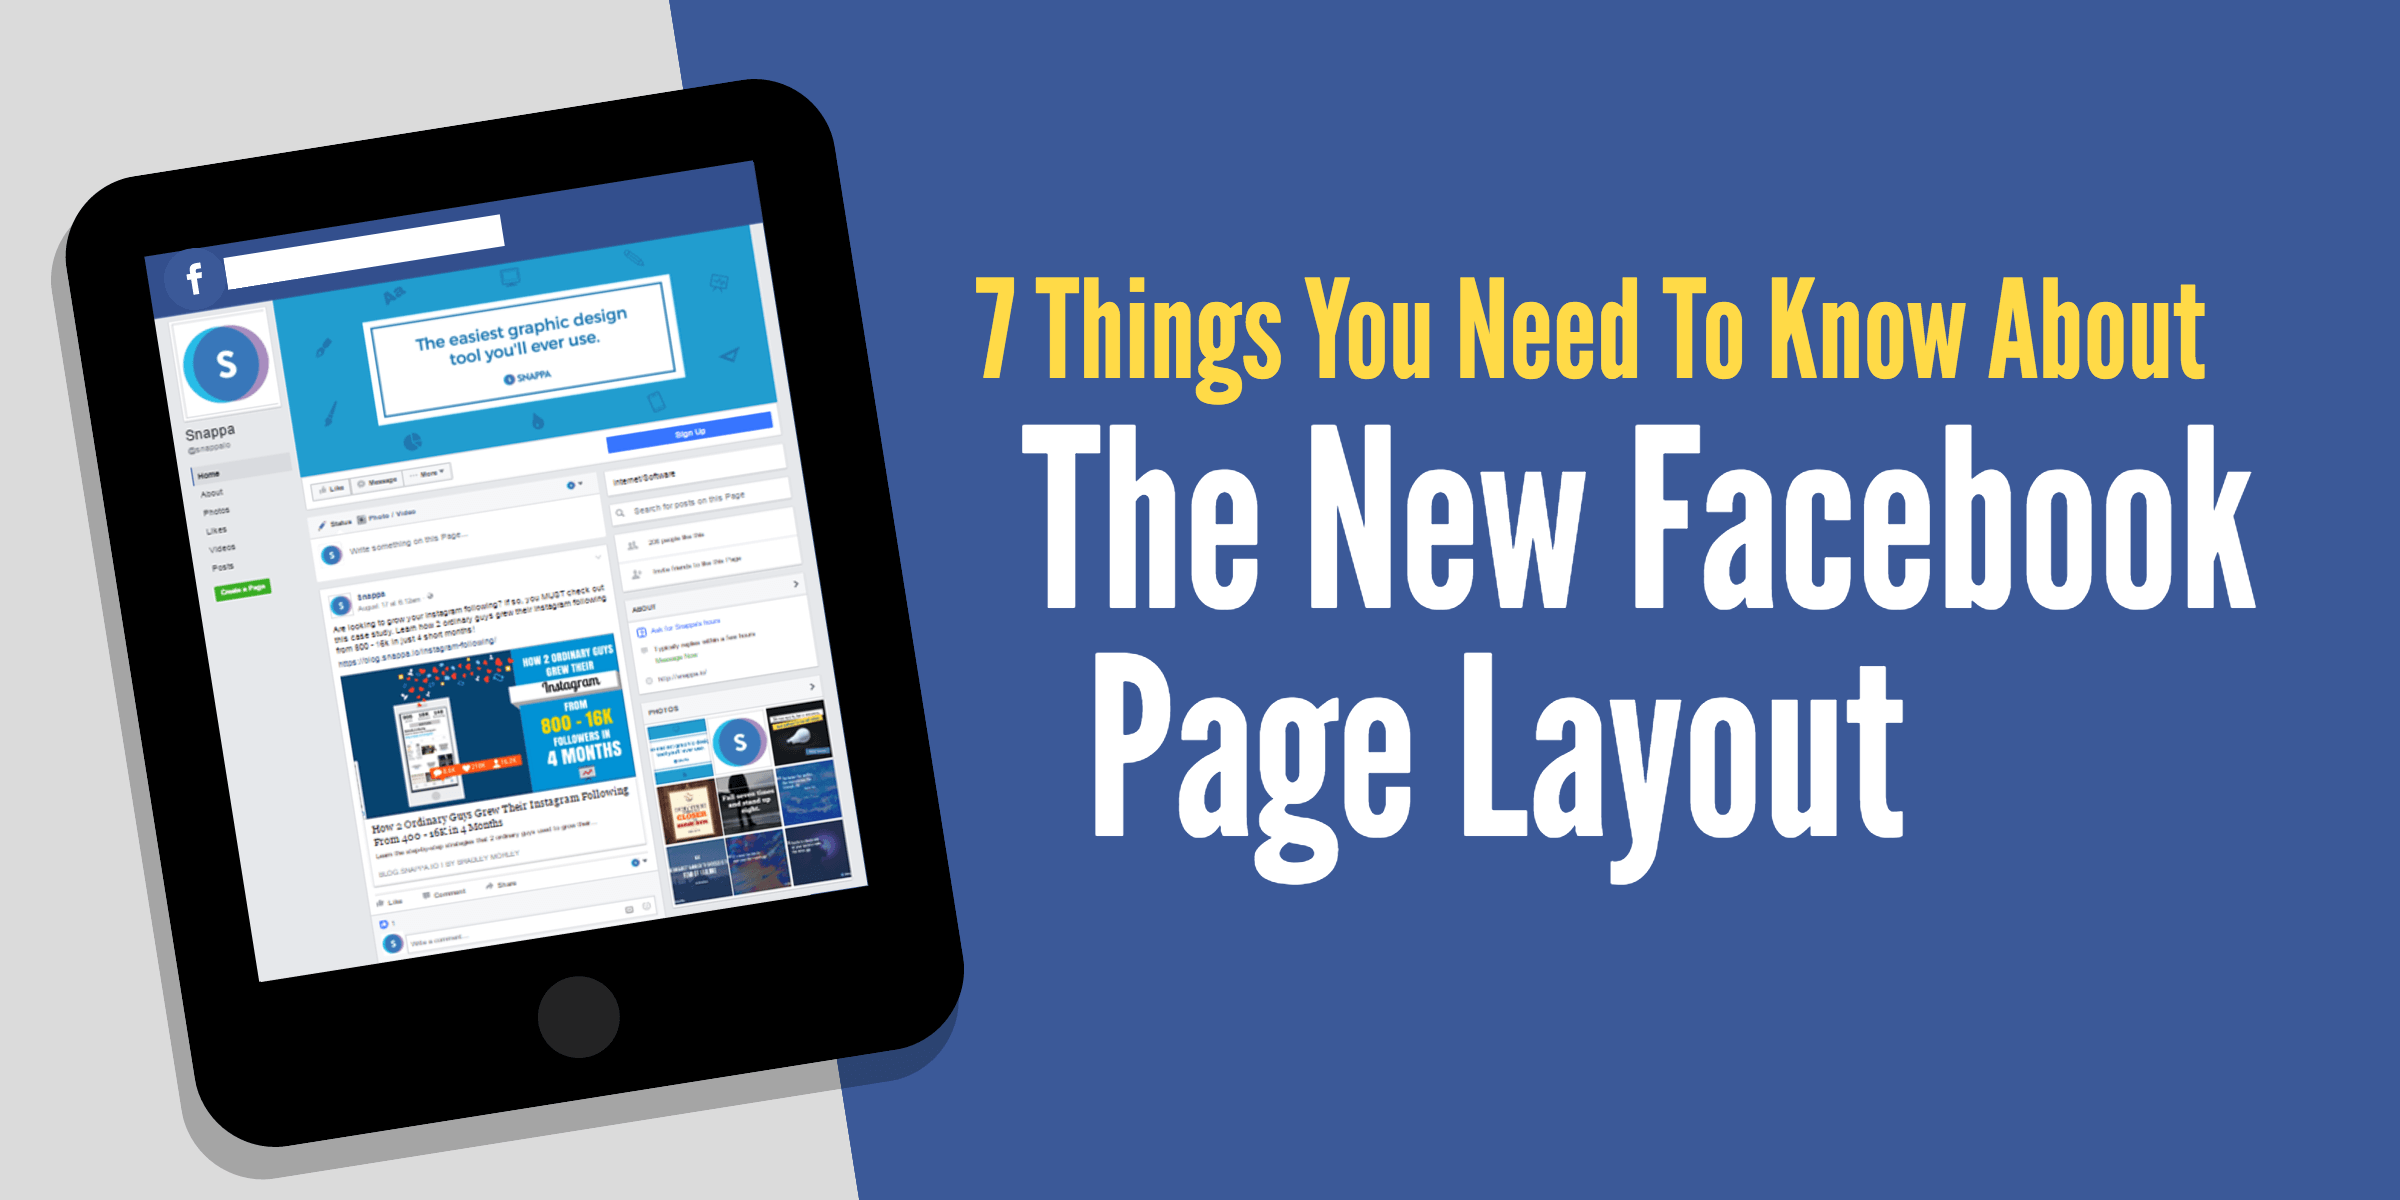 7 Things You Need To Know About The New Facebook Page